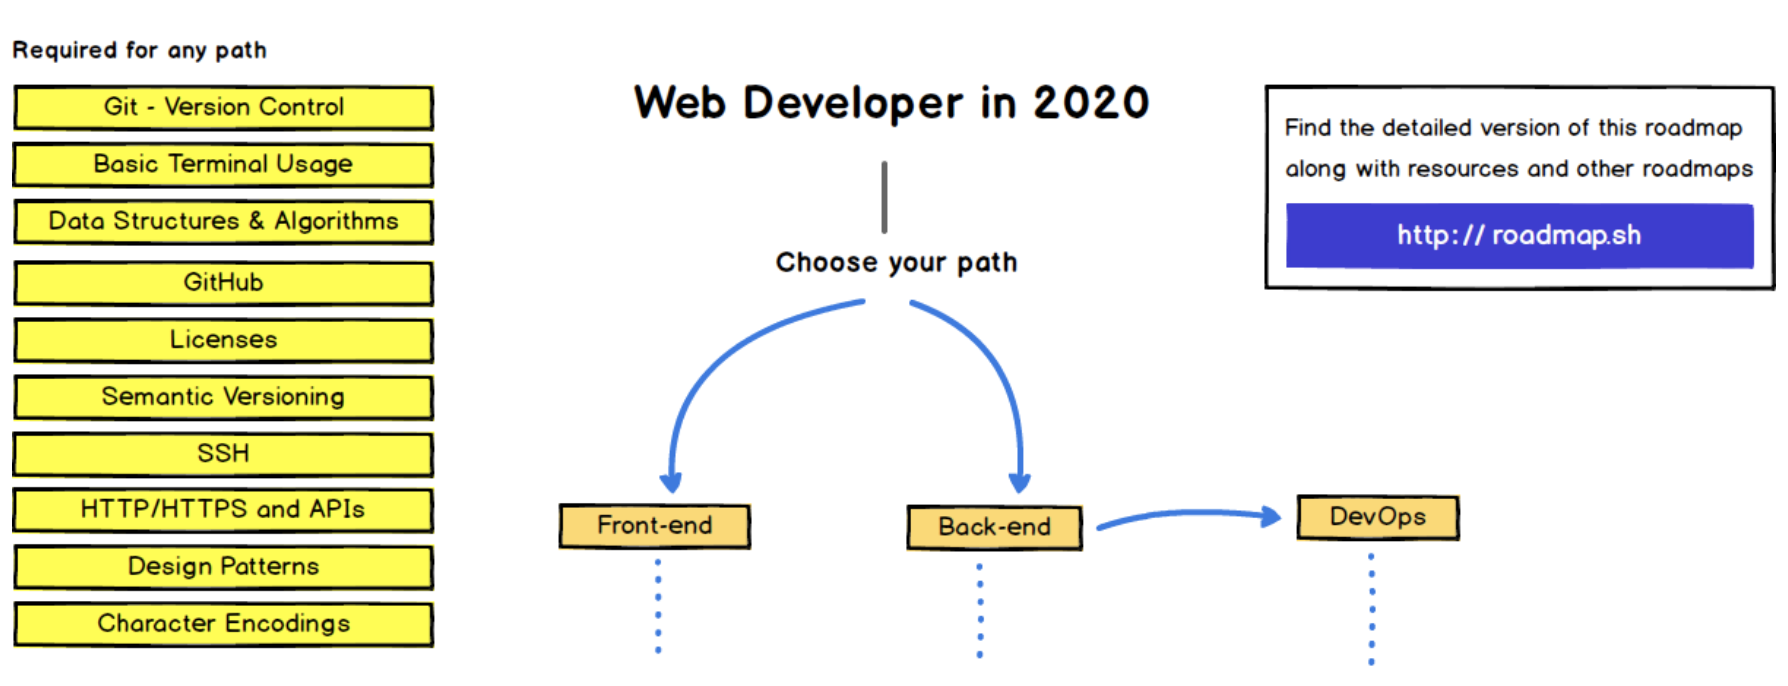 Starting image from Kamran Ahmed's GitHub repo: developer-roadmap